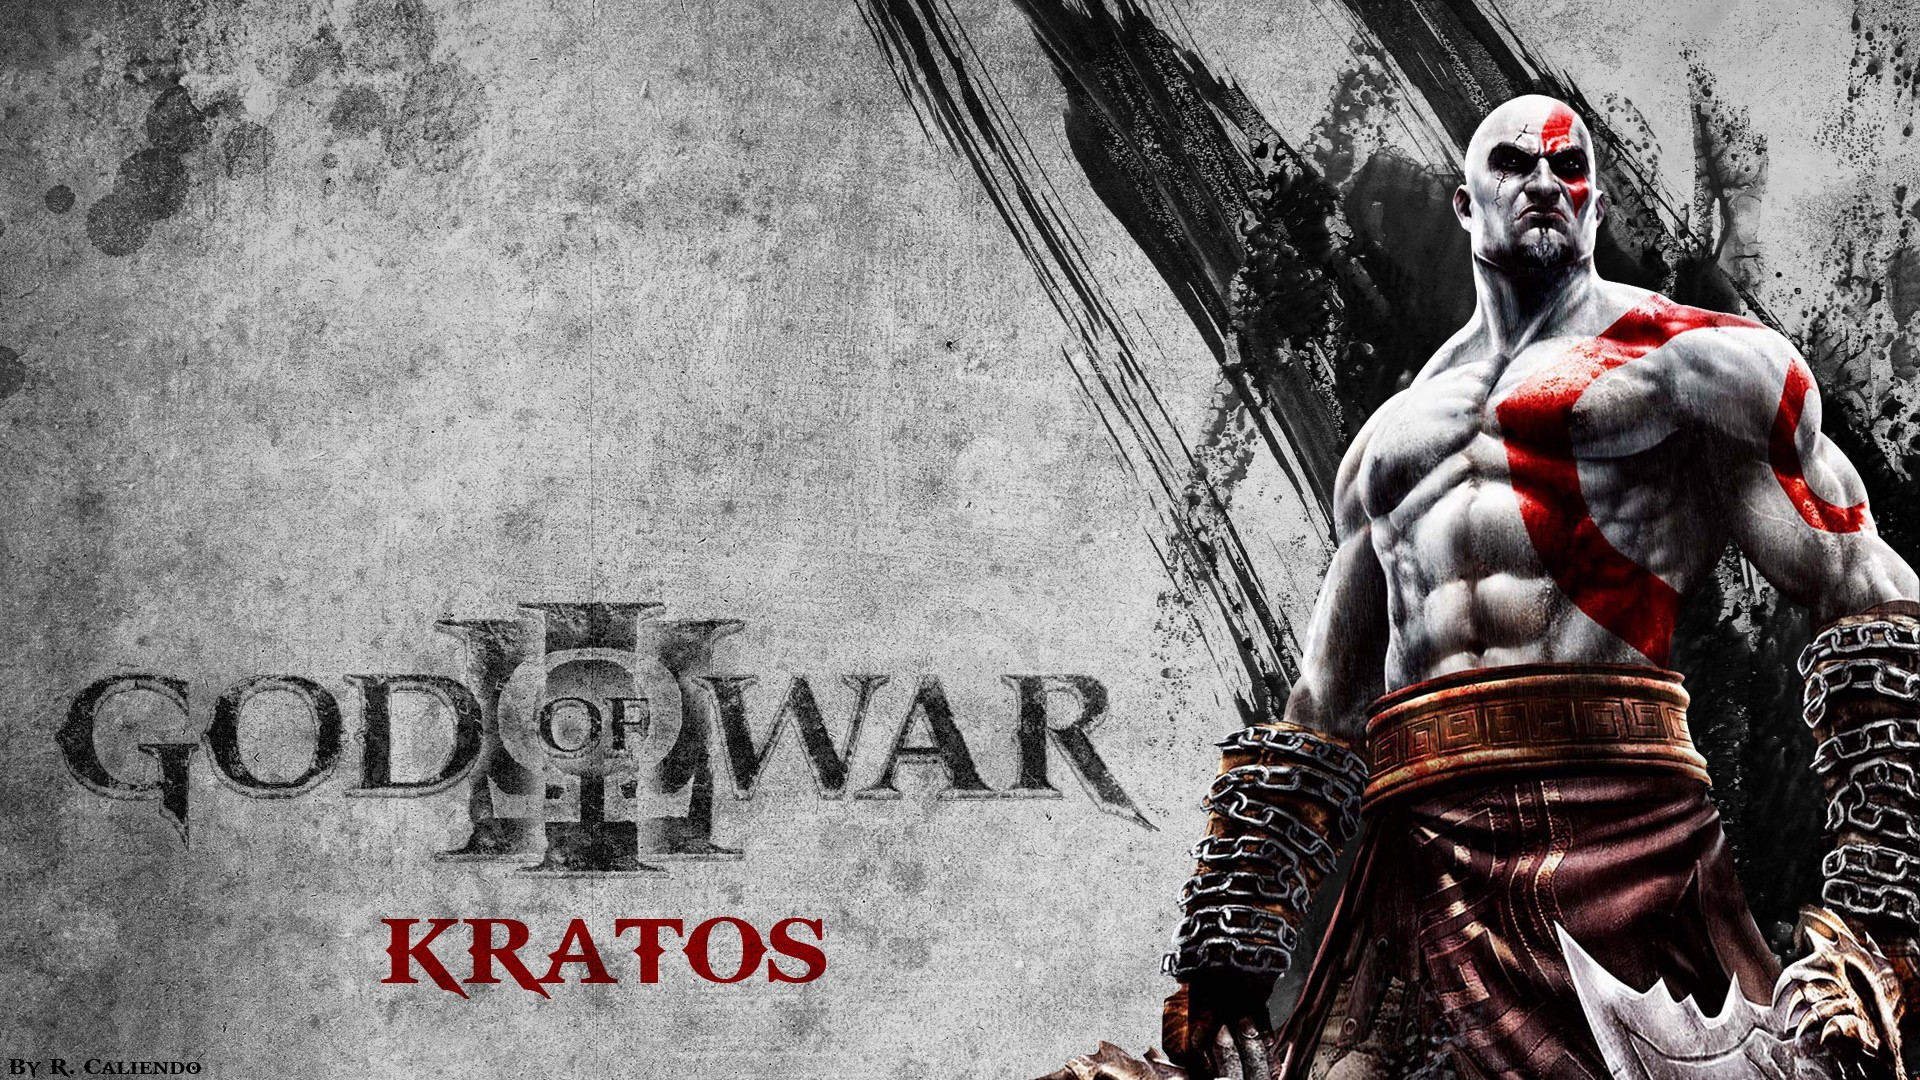 kratos_god_of_war_pc_games_desktop_1920x1080_hd-wallpaper-1660495